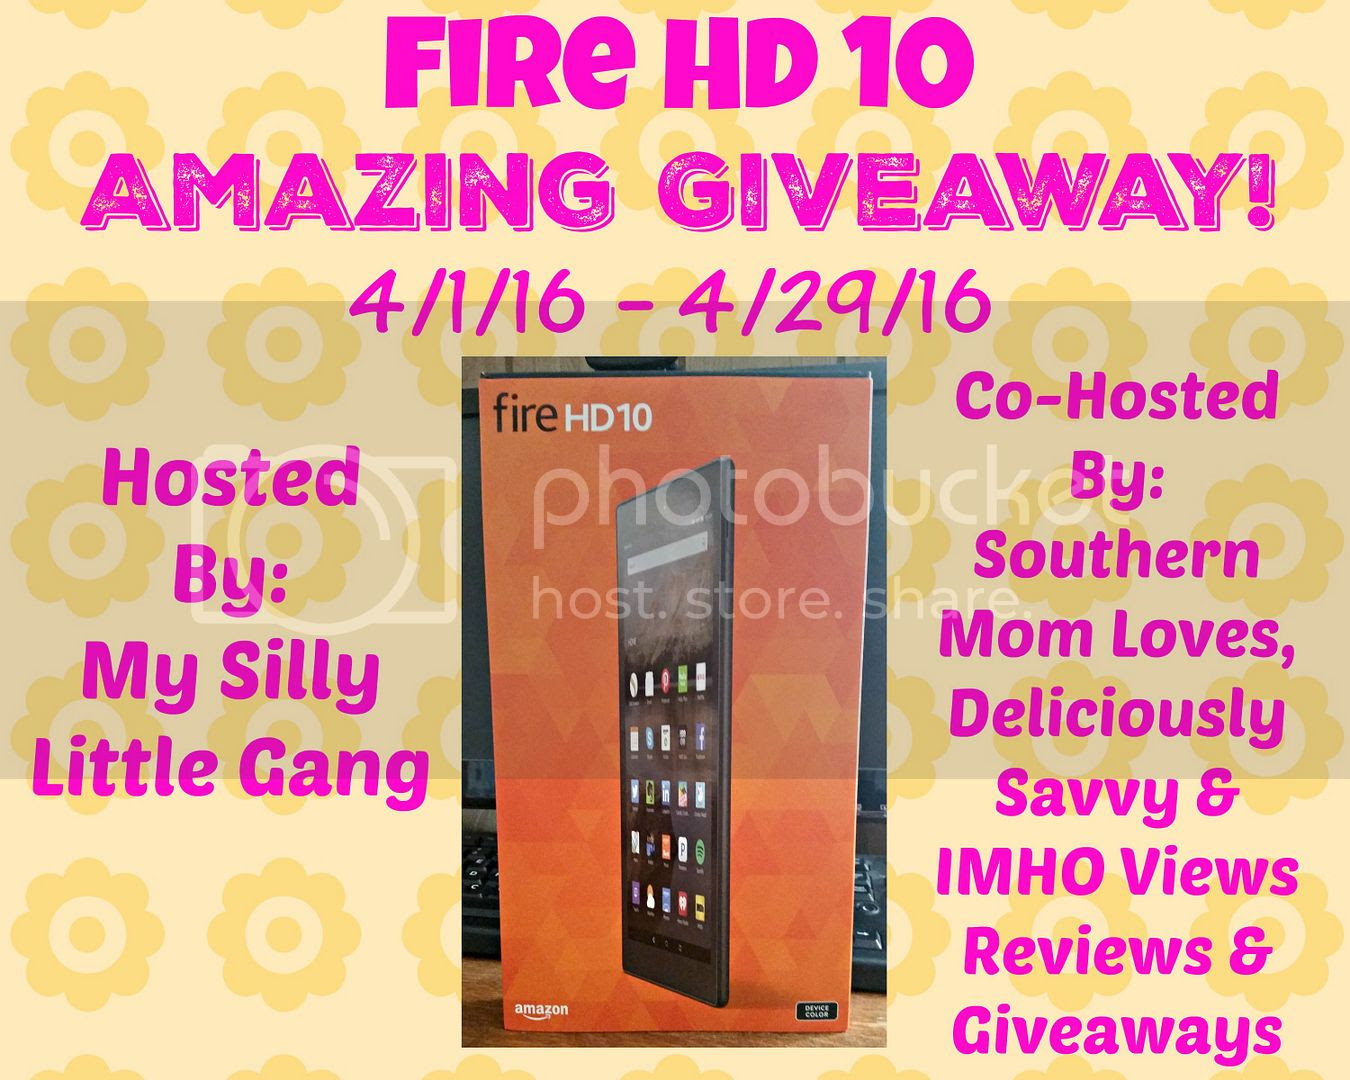 Fire HD 10 Amazing Giveaway